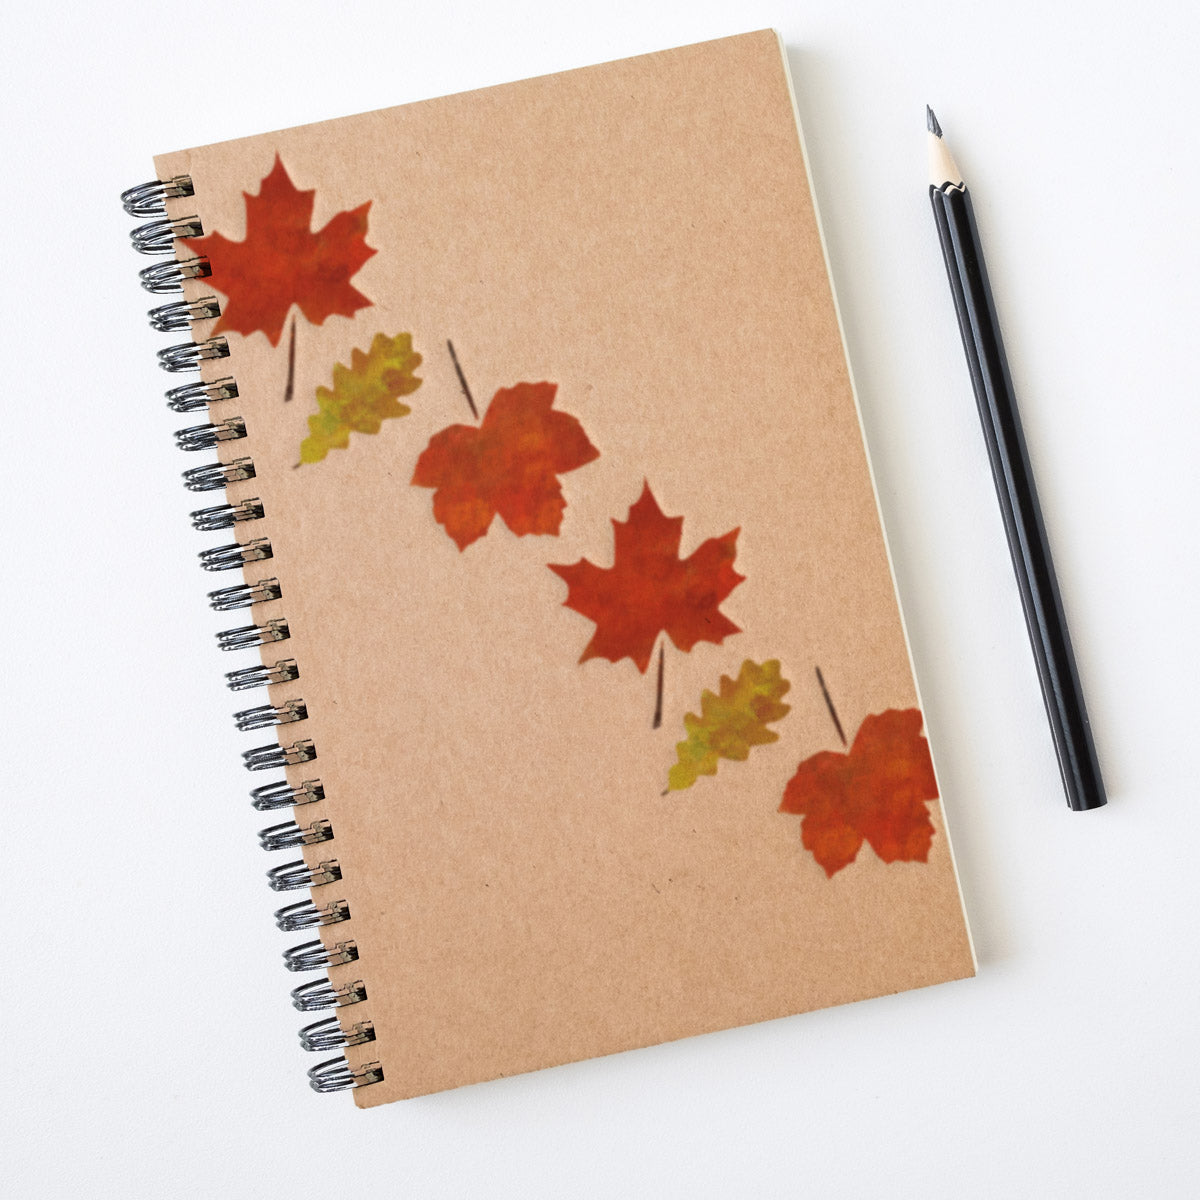 CraftStar Leaf Stencils on Notebook